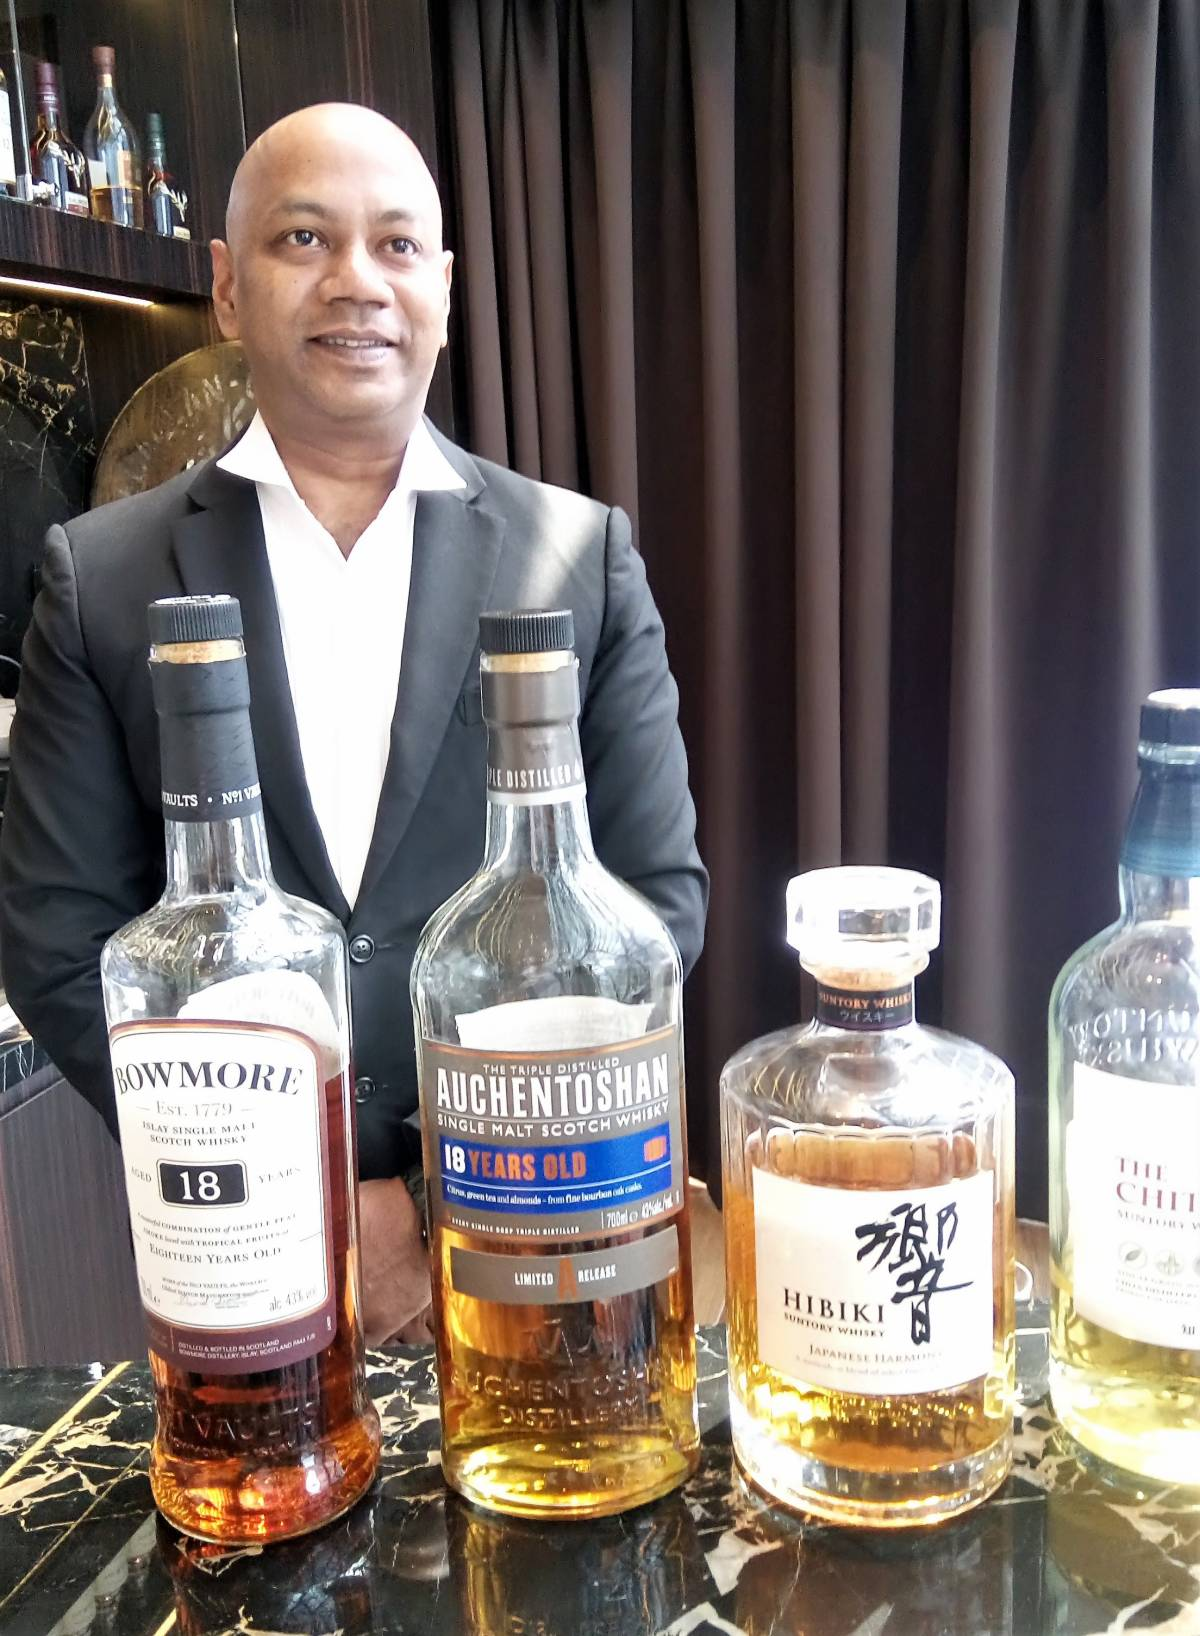 Grand Whisky Collection has 4,500 Whisky